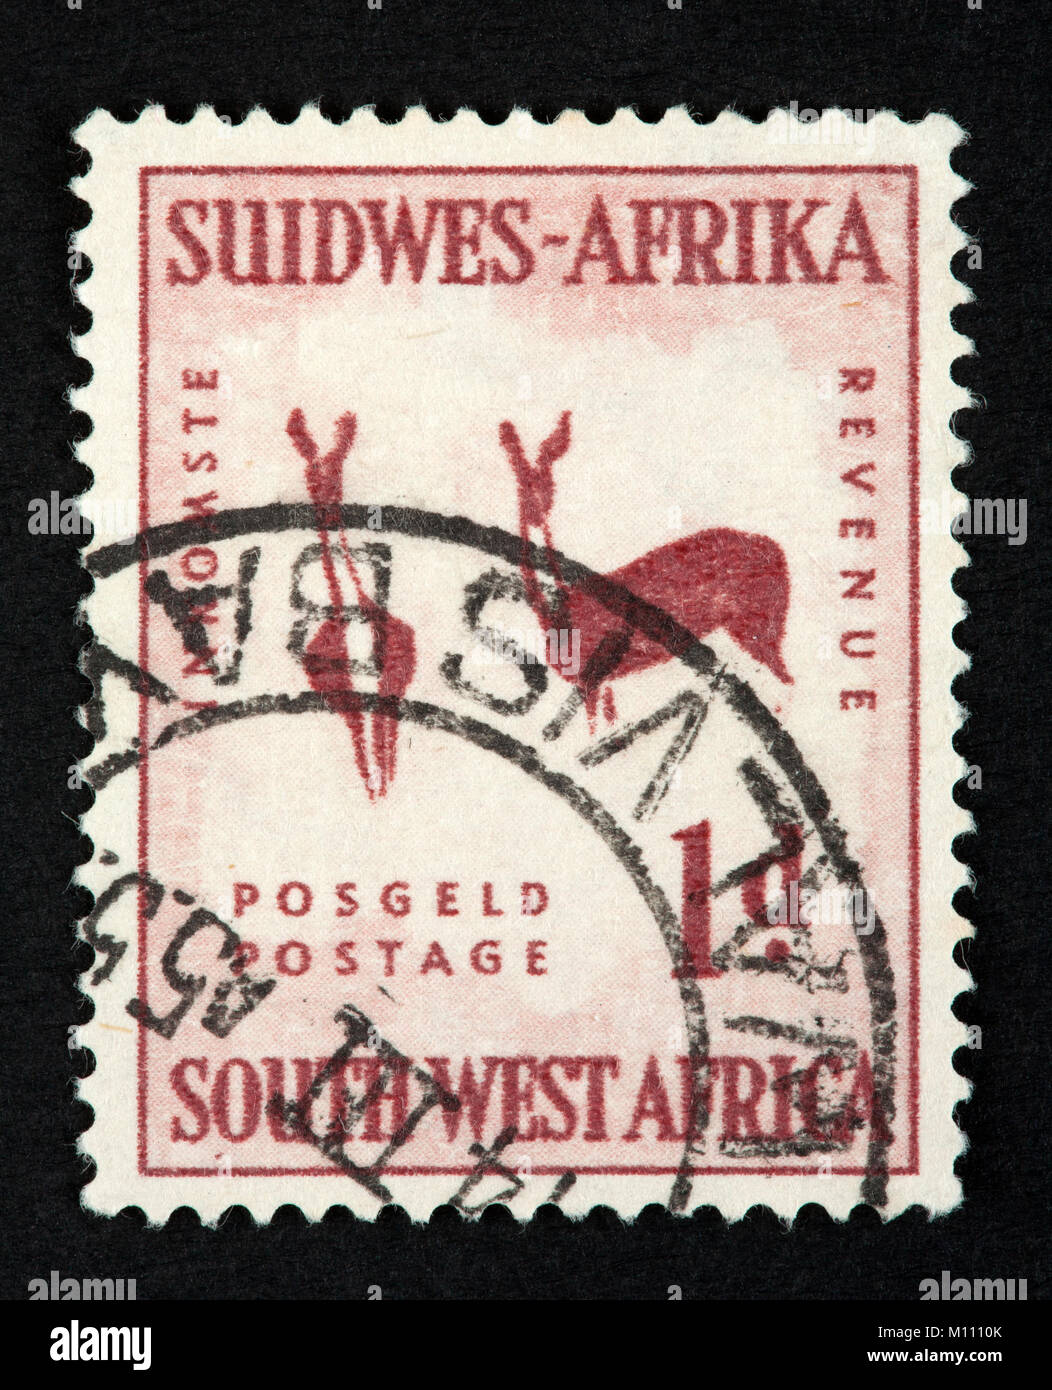 South West African postage stamp - Stock Image